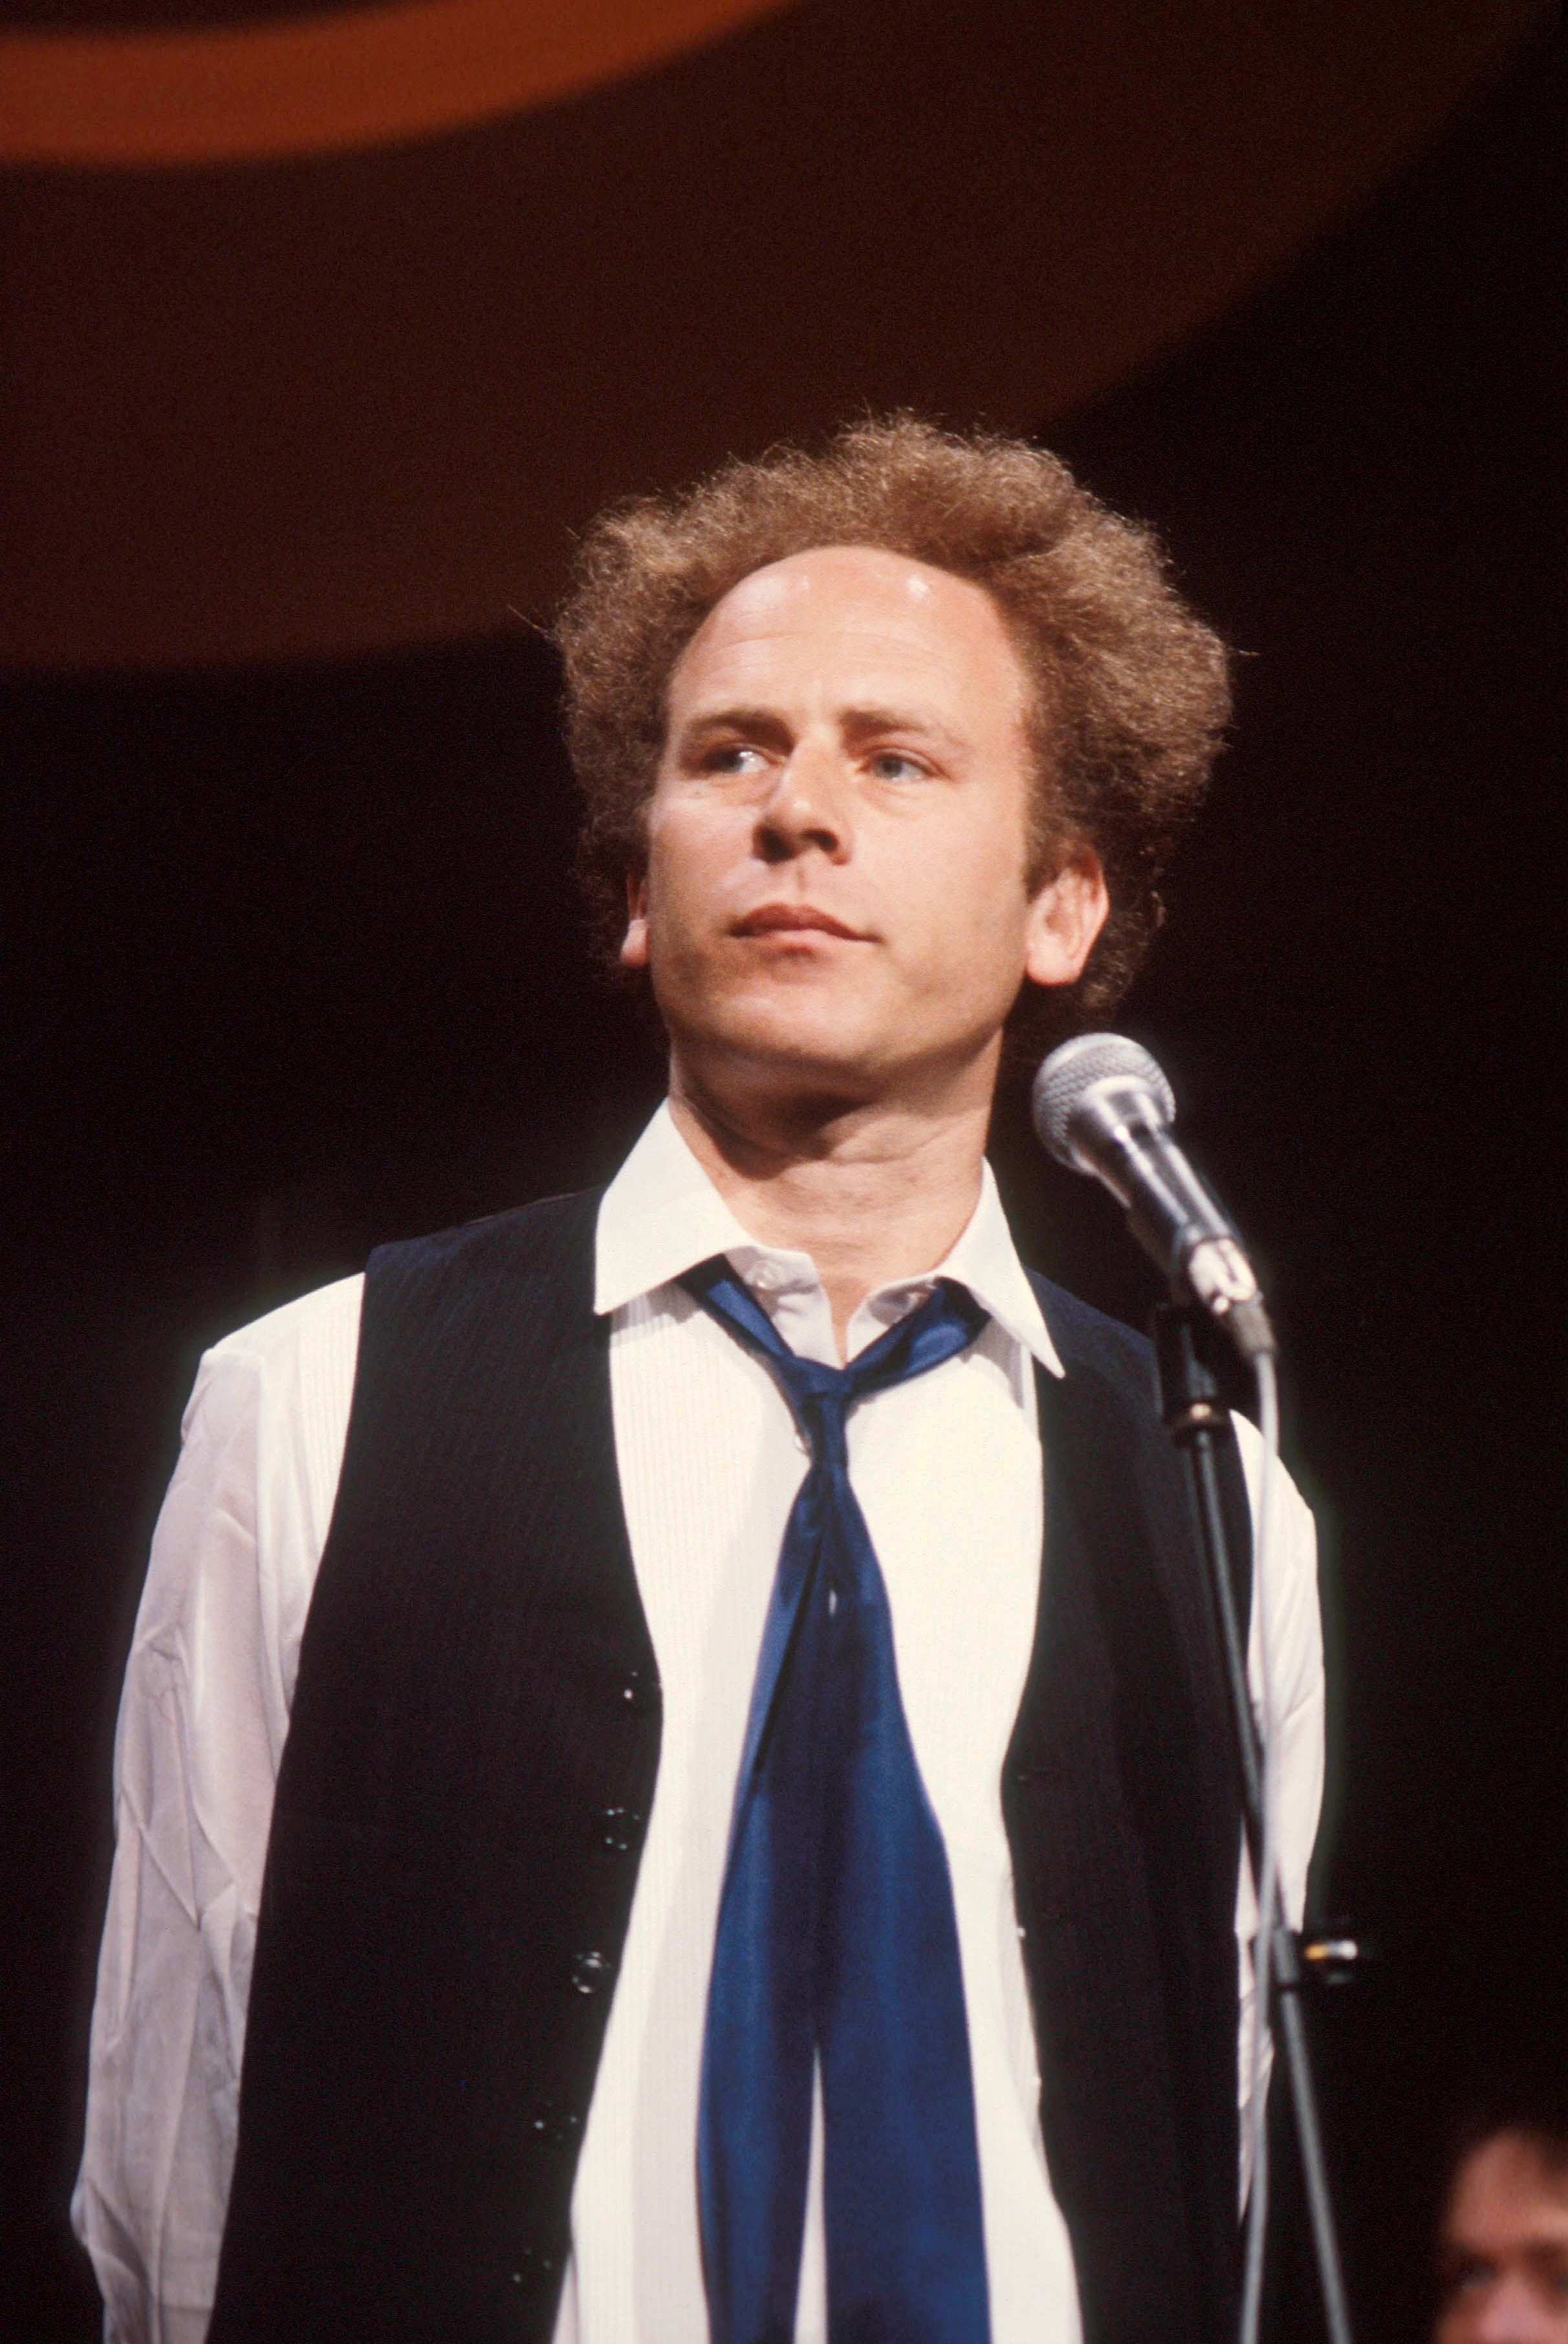 Art Garfunkel performs on a TV show, circa 1975. | Photo: Getty Images